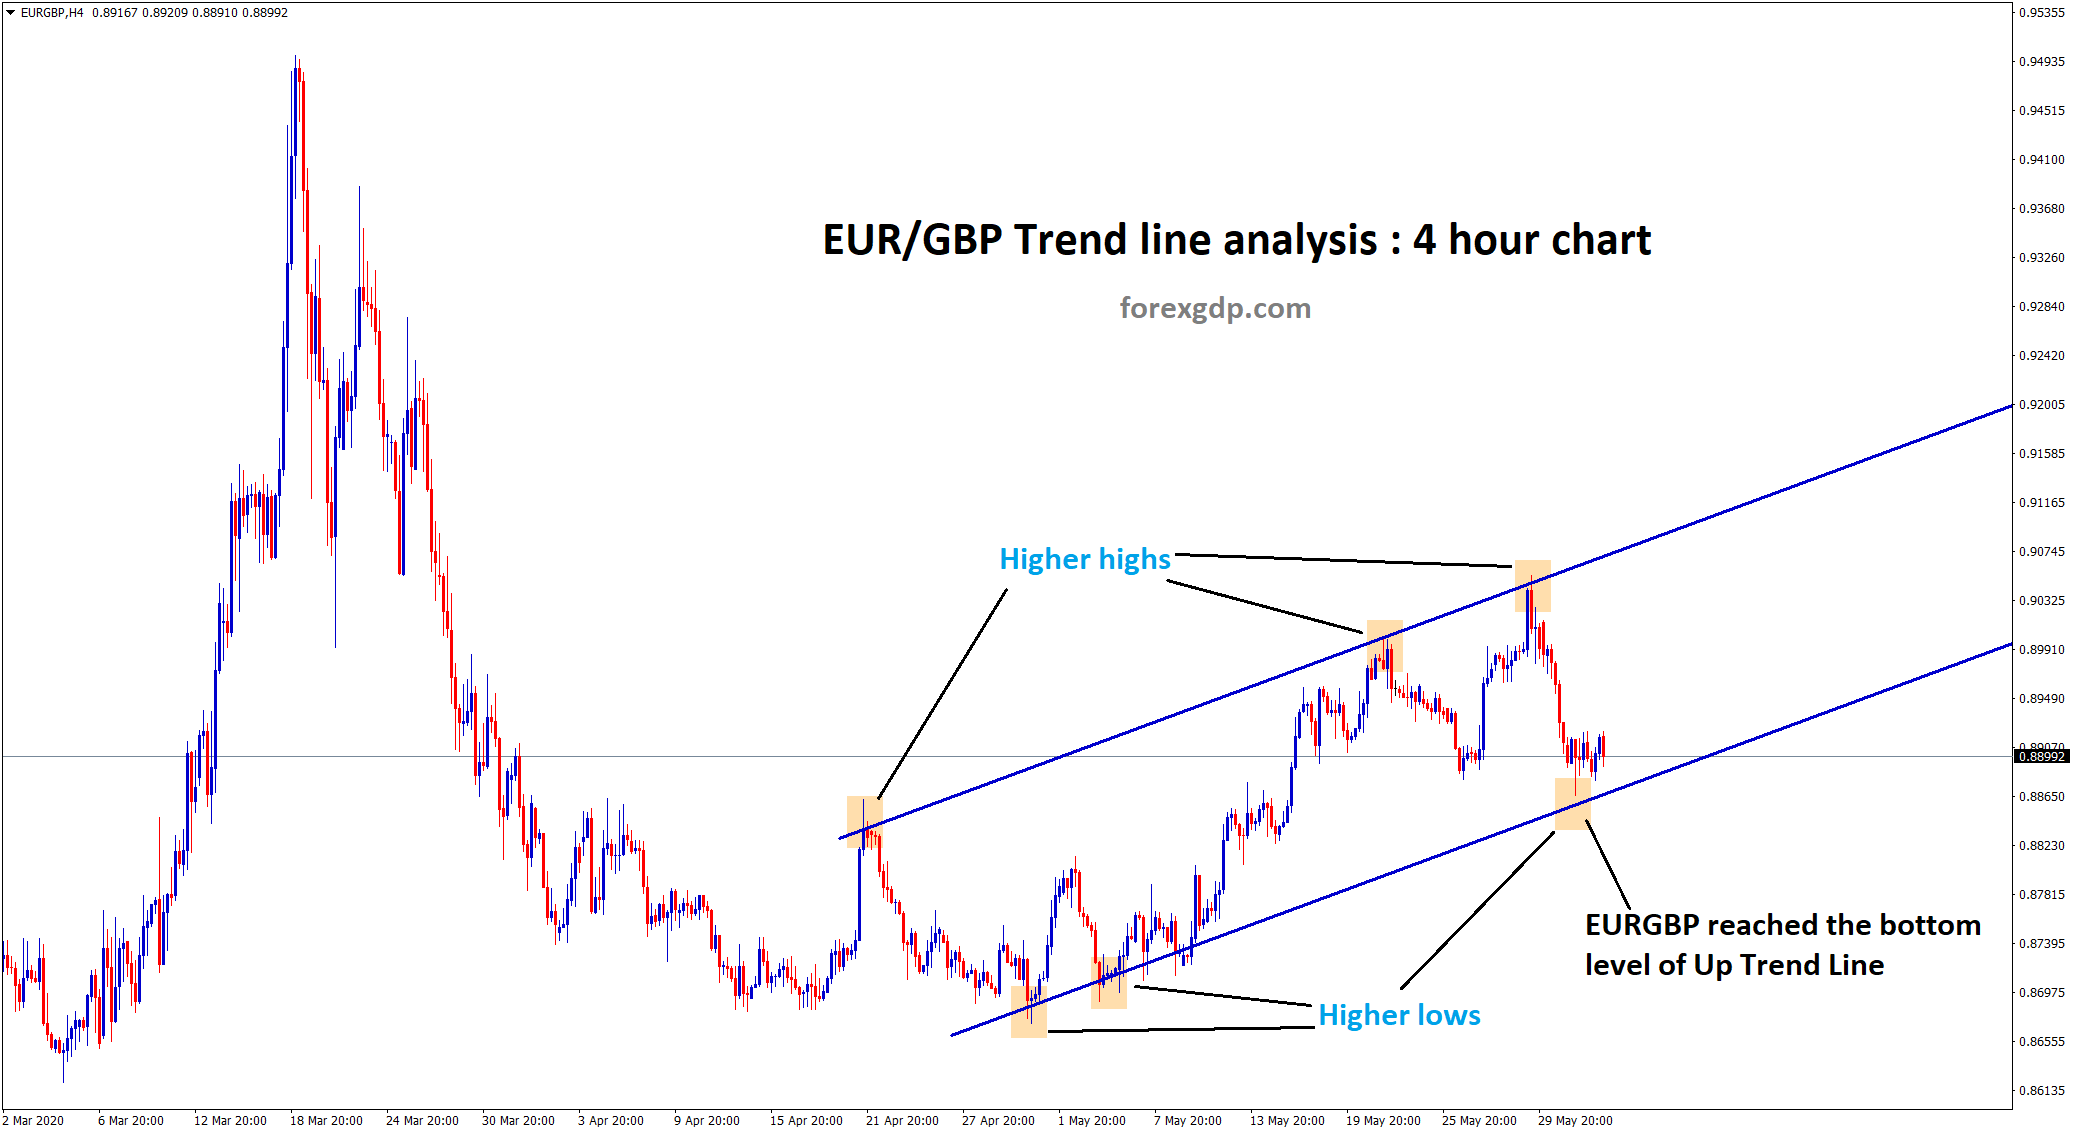 EURGBP up trend line reached higher low area in h4